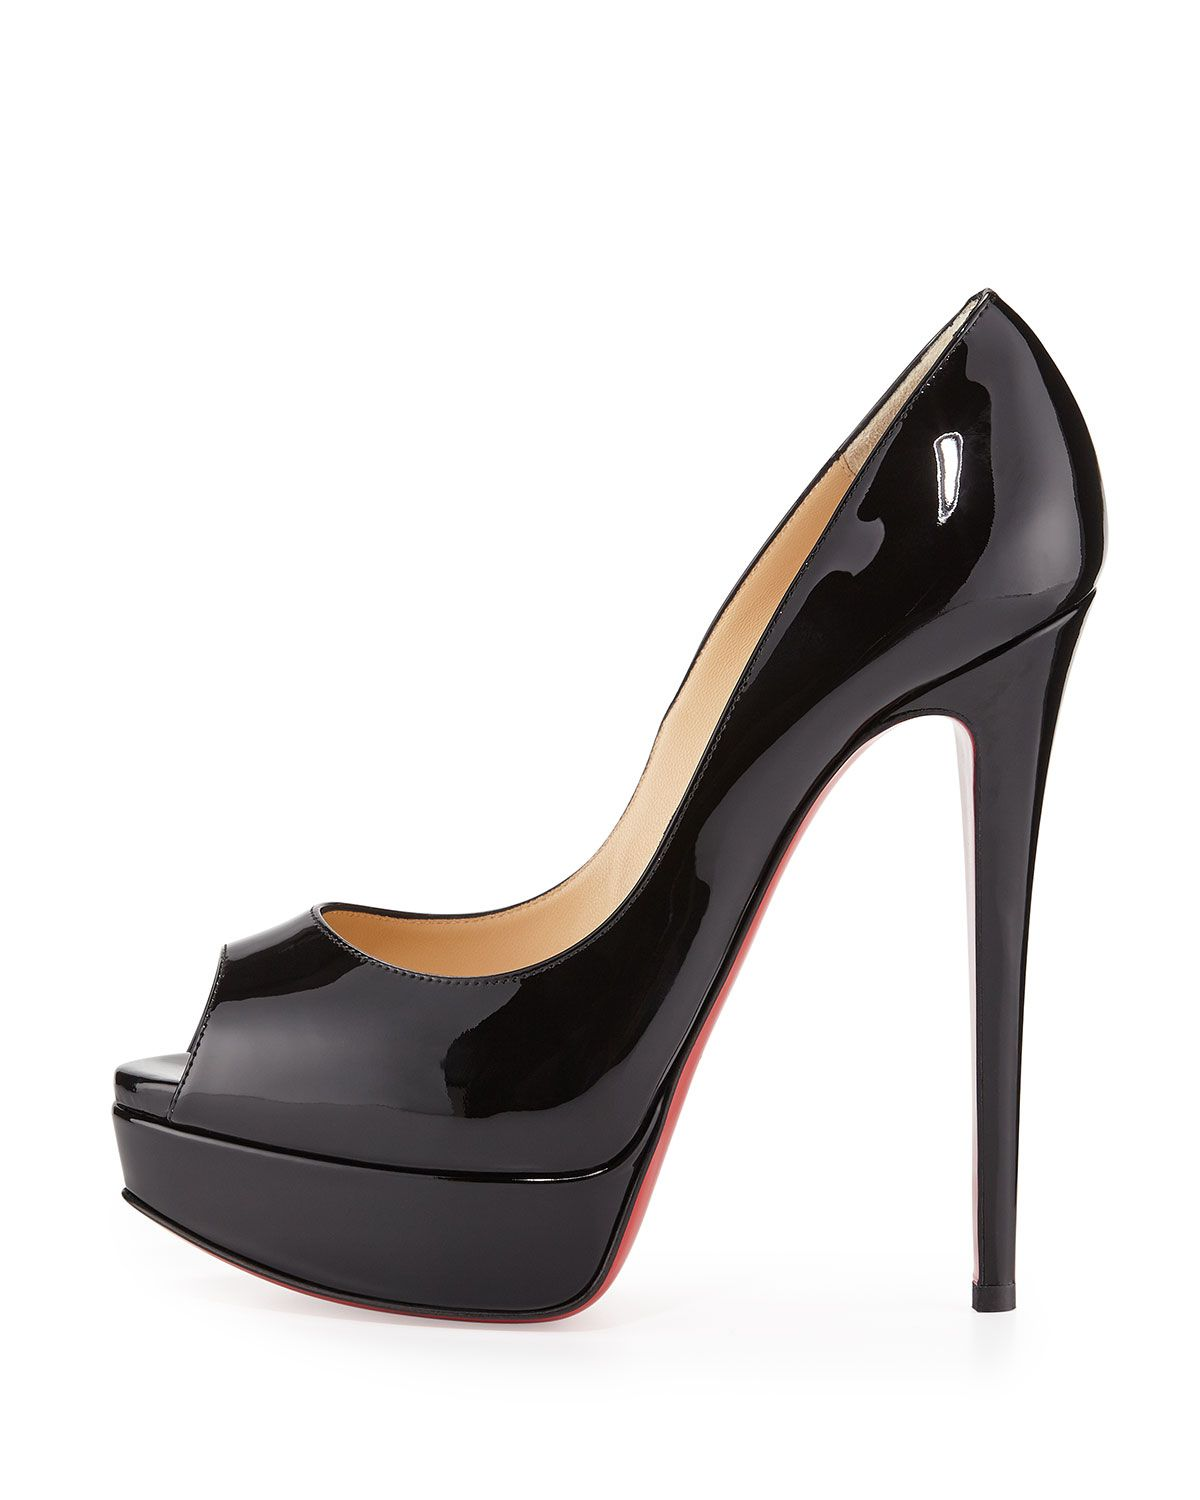 486432d71d36 Christian Louboutin patent leather pump. Peep toe sits atop 1 1 4 platform.  6 covered heel  4 1 2 equiv. Low dipped vamp visually elongates legs.